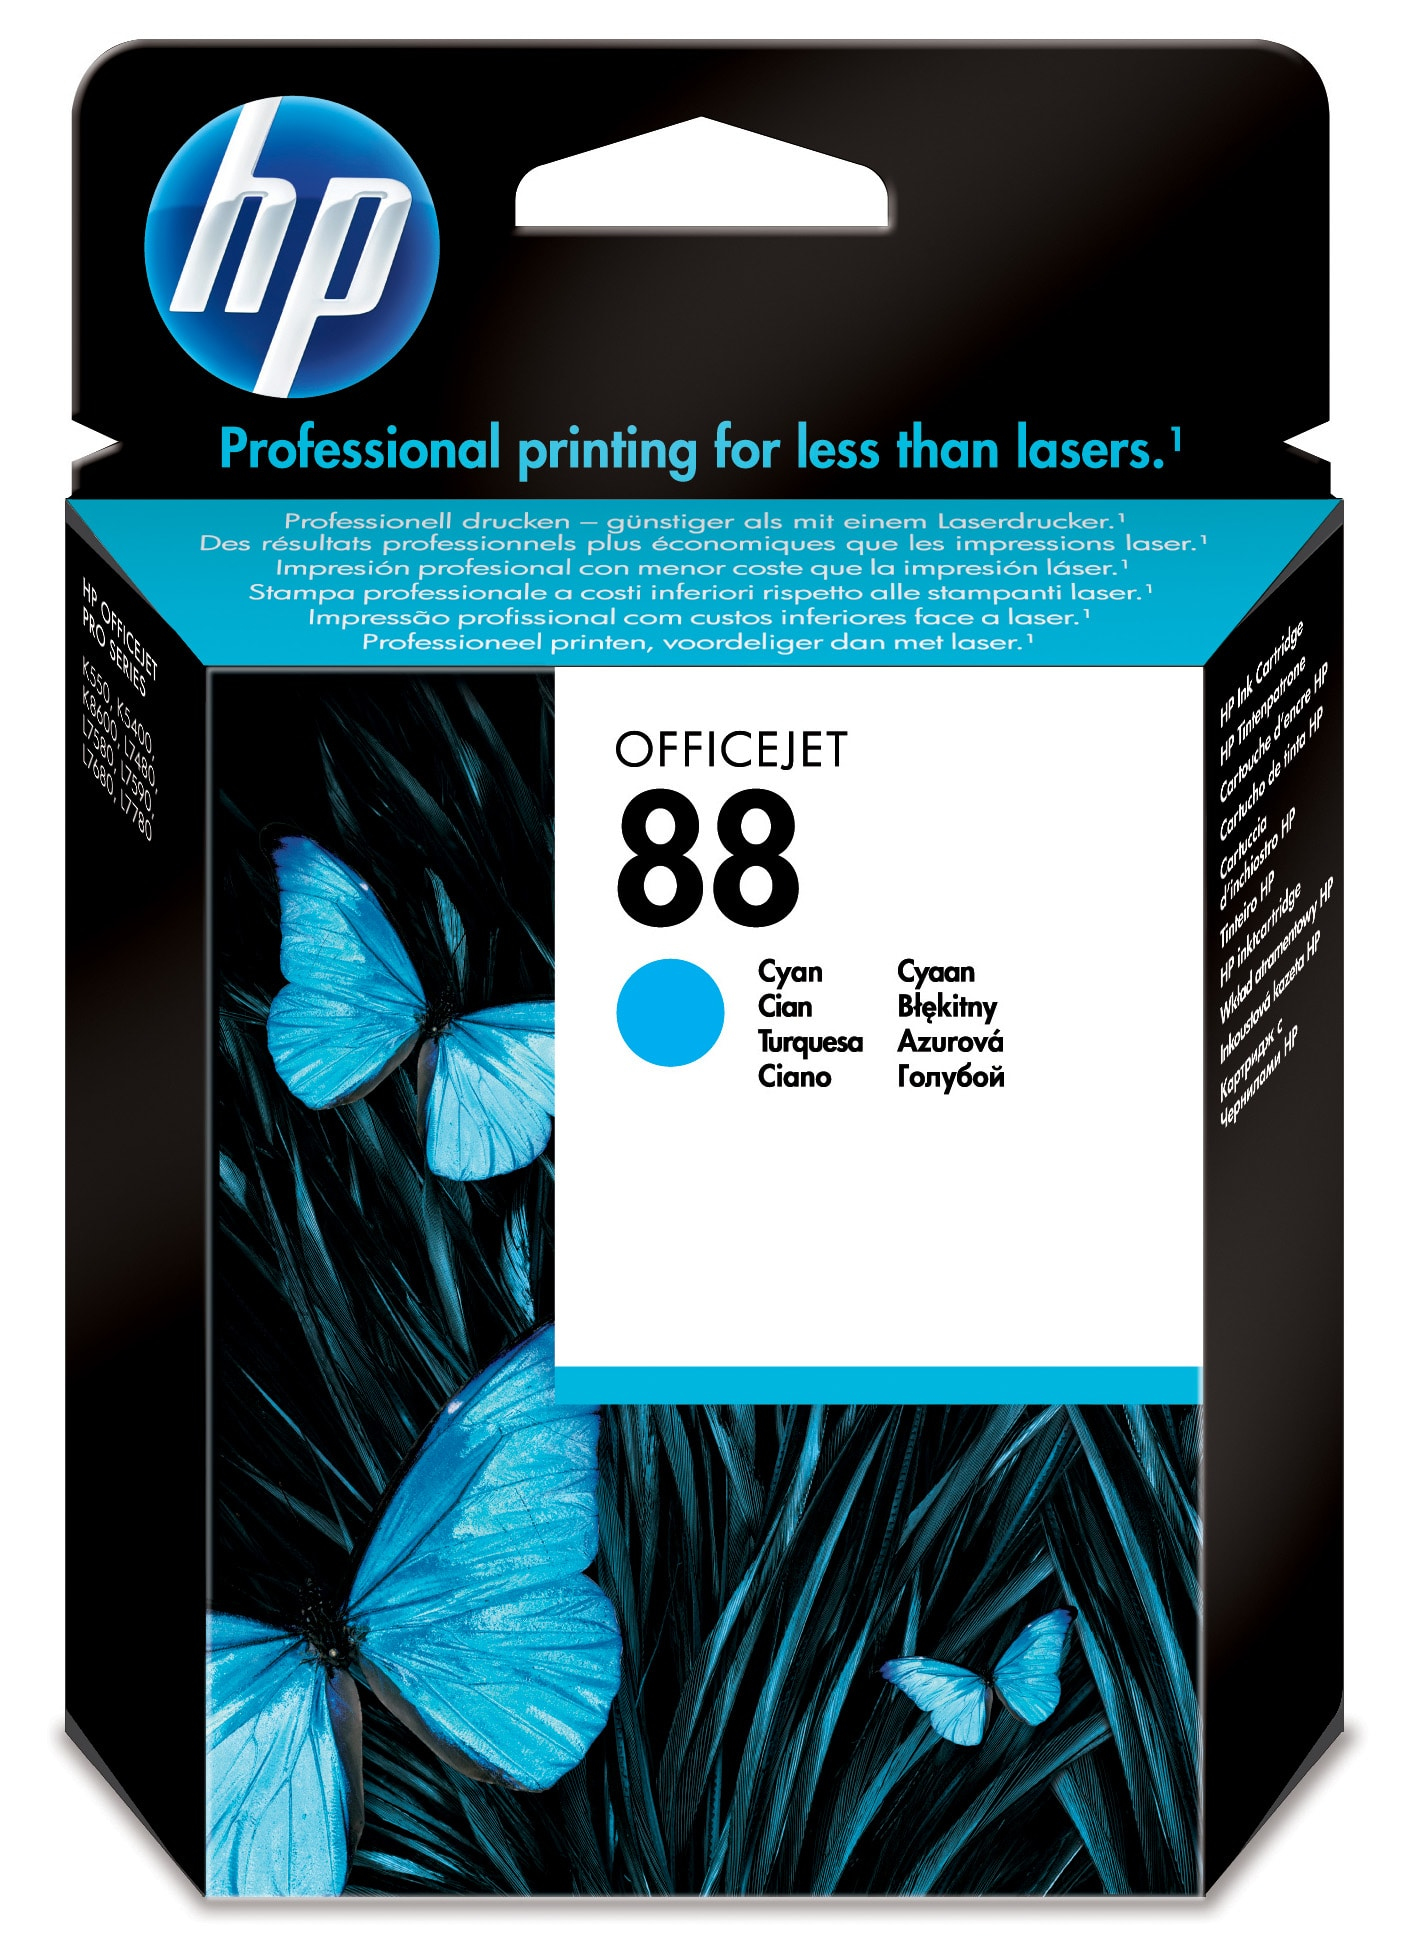 Remanufactured HP C9386AE (88) Cyan Ink Cartridge C9386AE - rem01